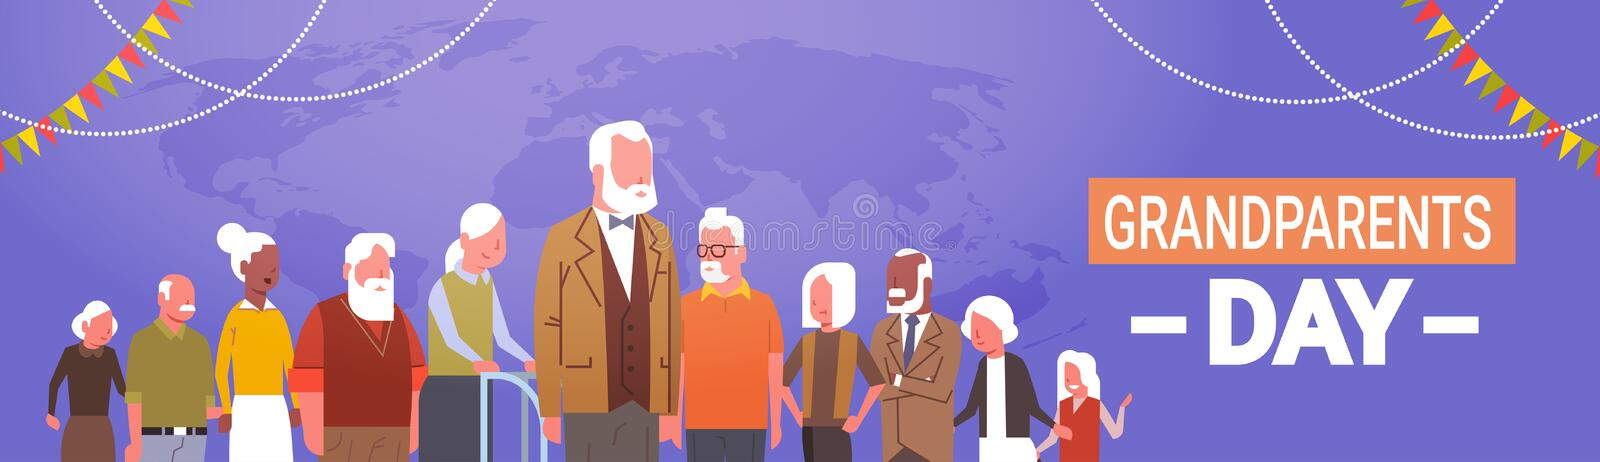 Happy Grandparents Day Greeting Card Banner Mix Race Group royalty free illustration